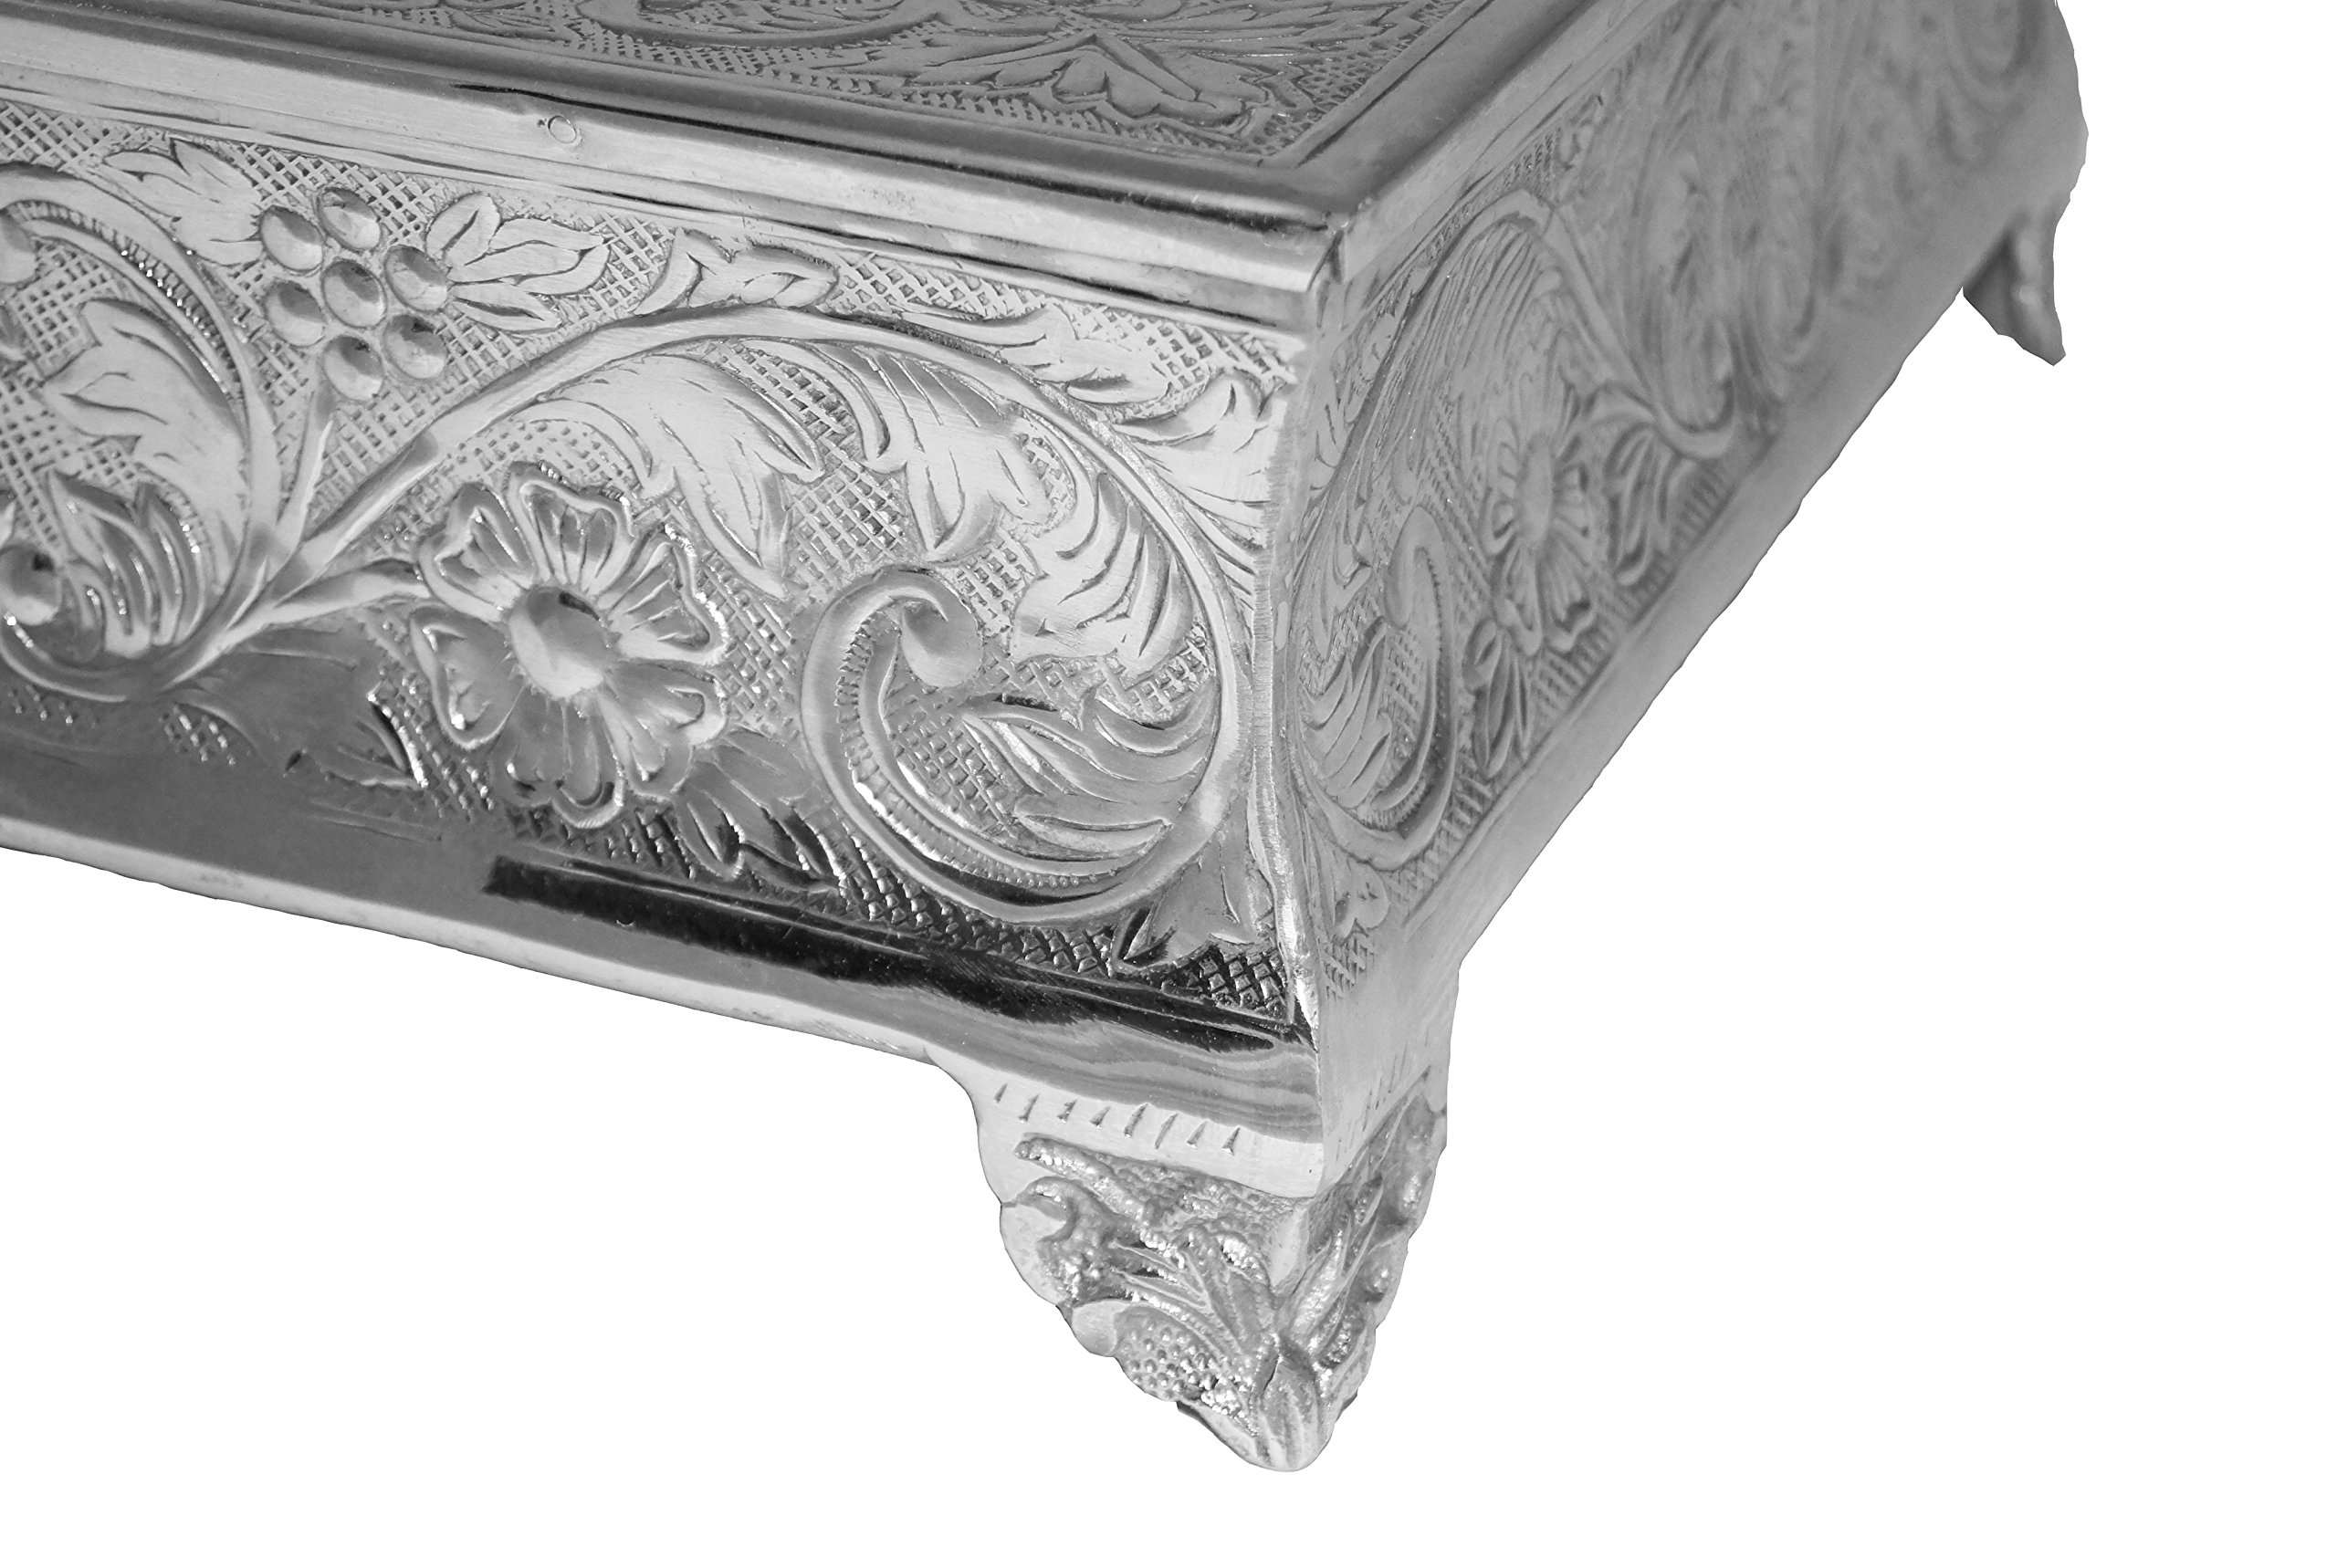 GiftBay Creations 751-22S Wedding Square Cake Stand, 22-Inch, Silver by GiftBay Creations (Image #5)